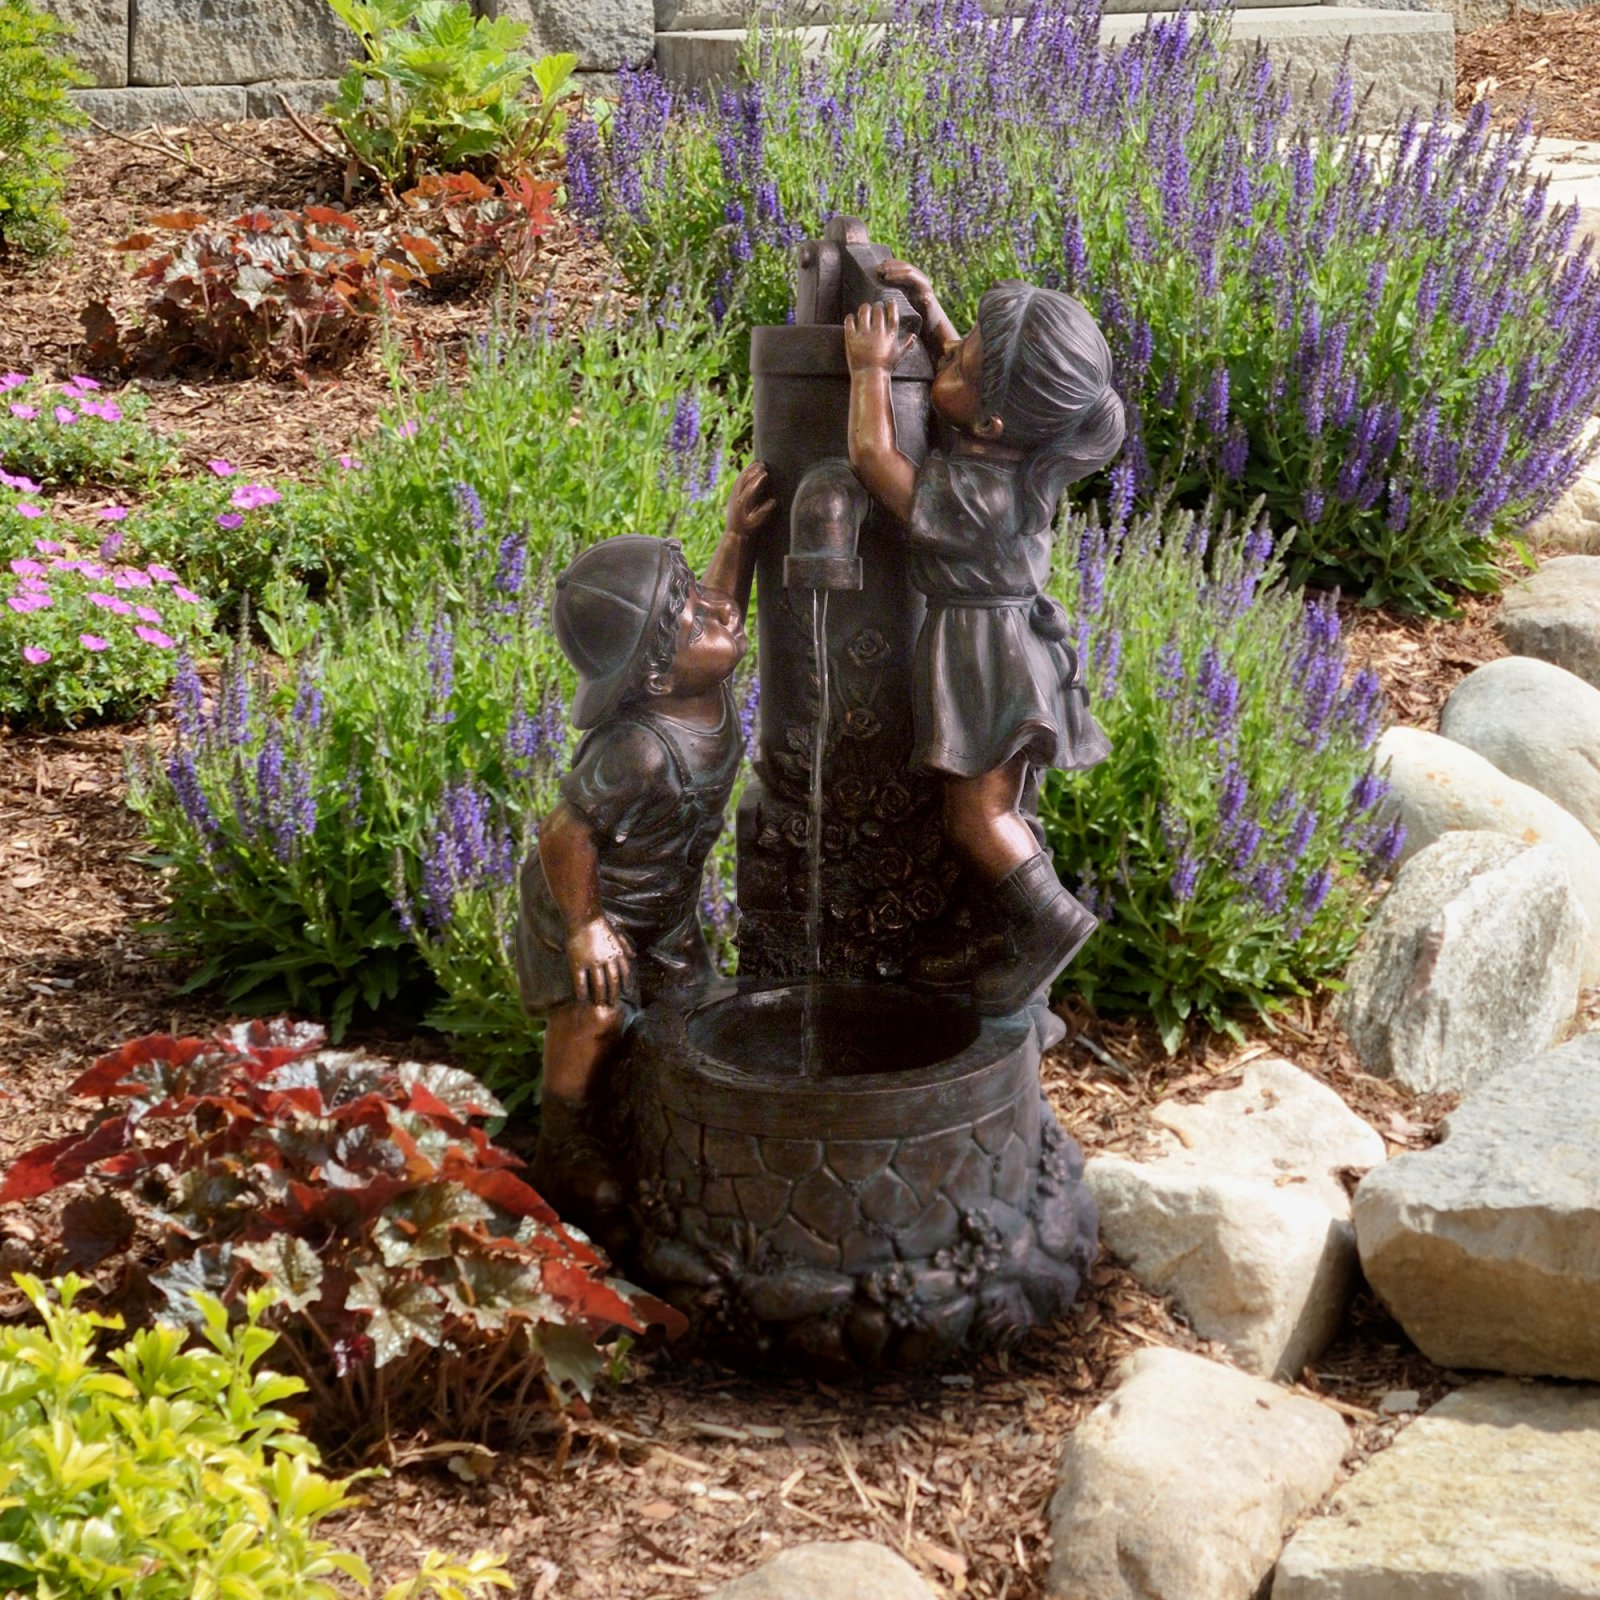 Pure Garden Boy and Girl Water Outdoor Fountain